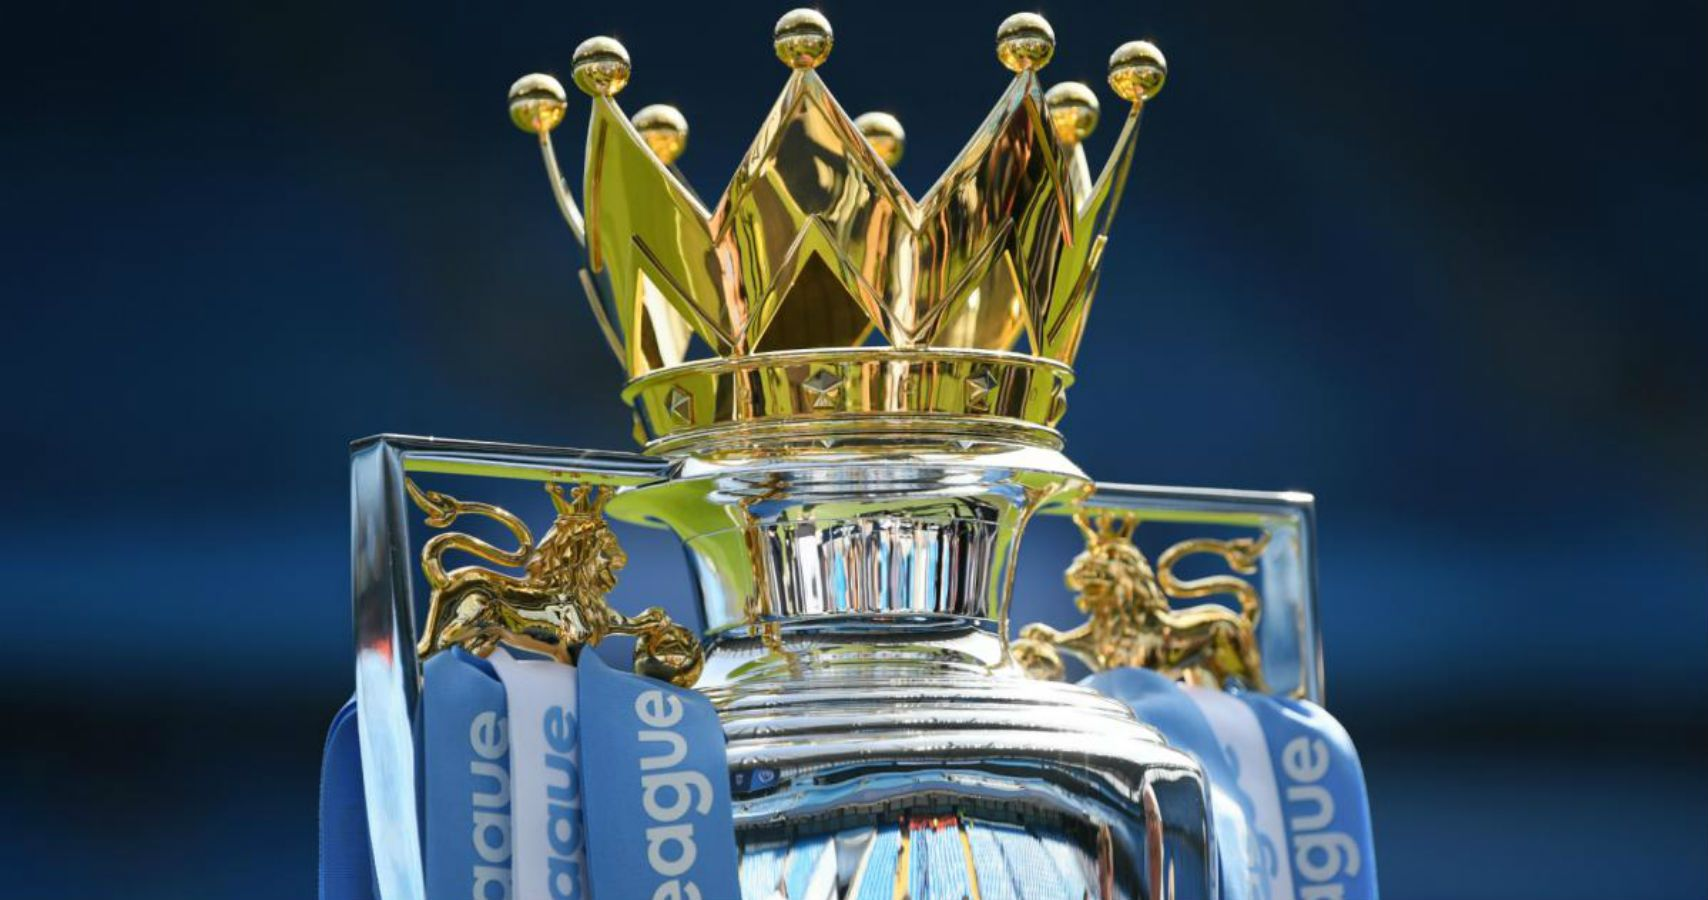 Premier League To Launch Hall Of Fame, First Inductees ...